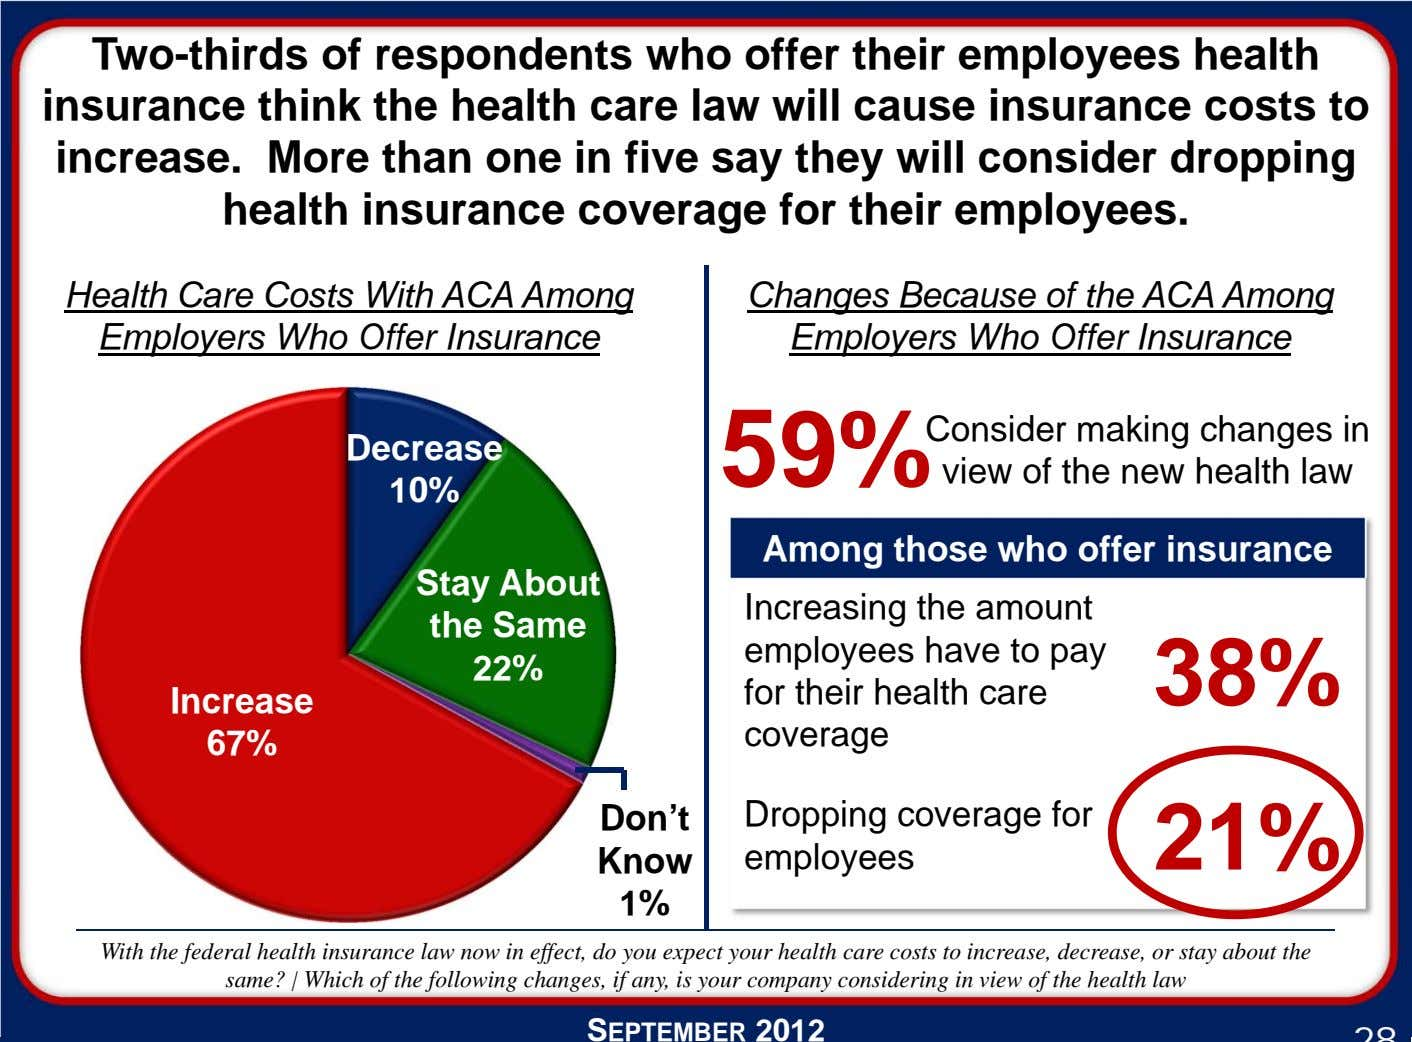 Two-thirds of respondents who offer their employees health insurance think the health care law will